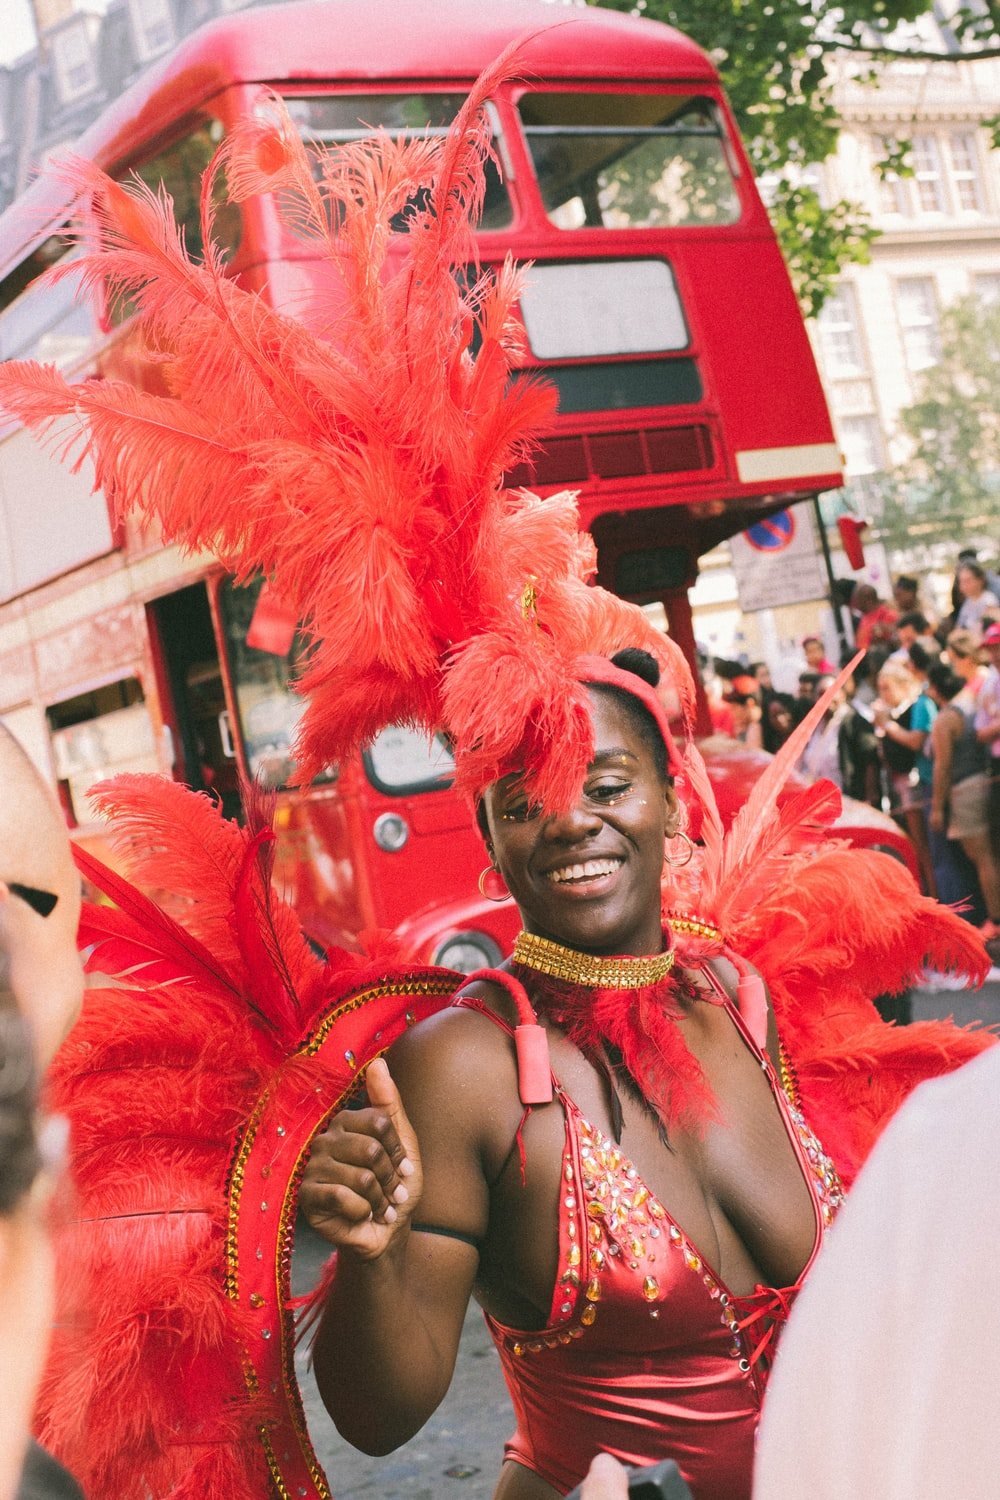 woman wearing red costume dancing near red bus